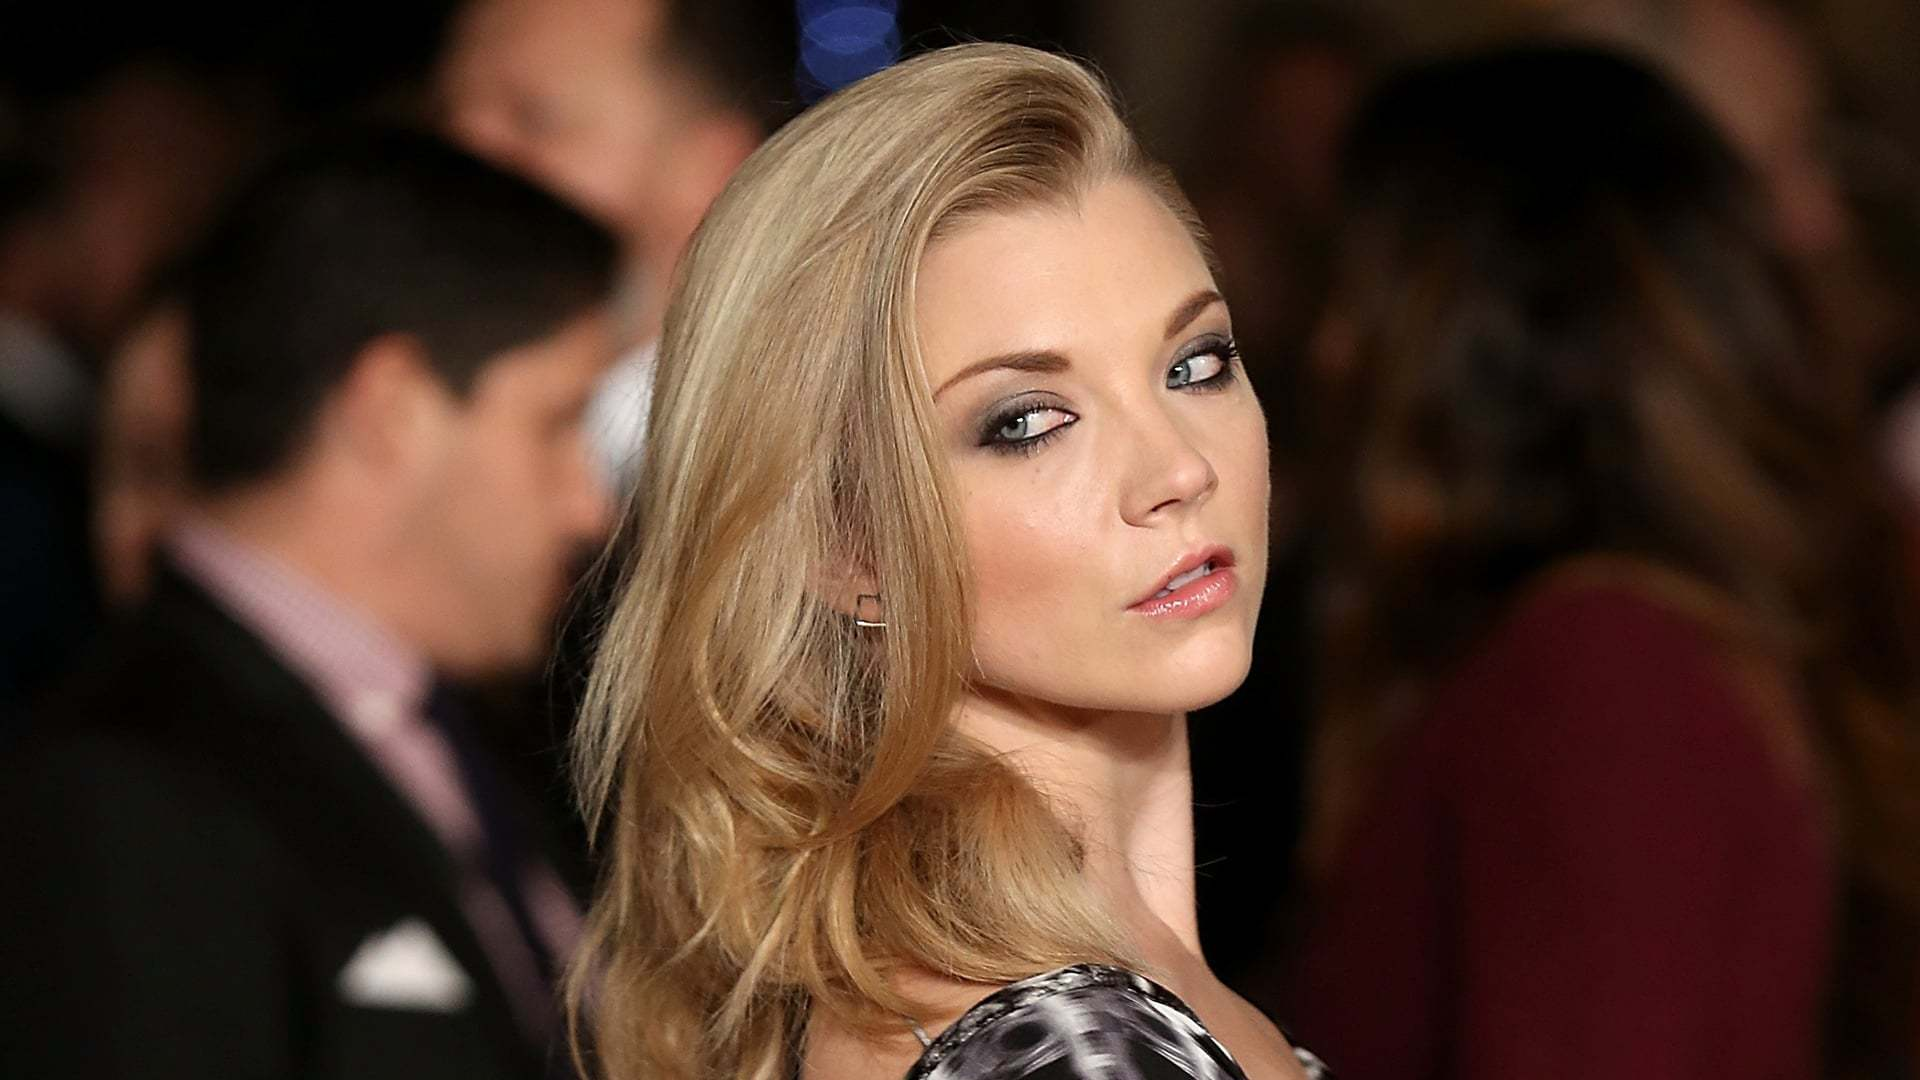 Natalie Dormer Wallpapers Images Photos Pictures Backgrounds